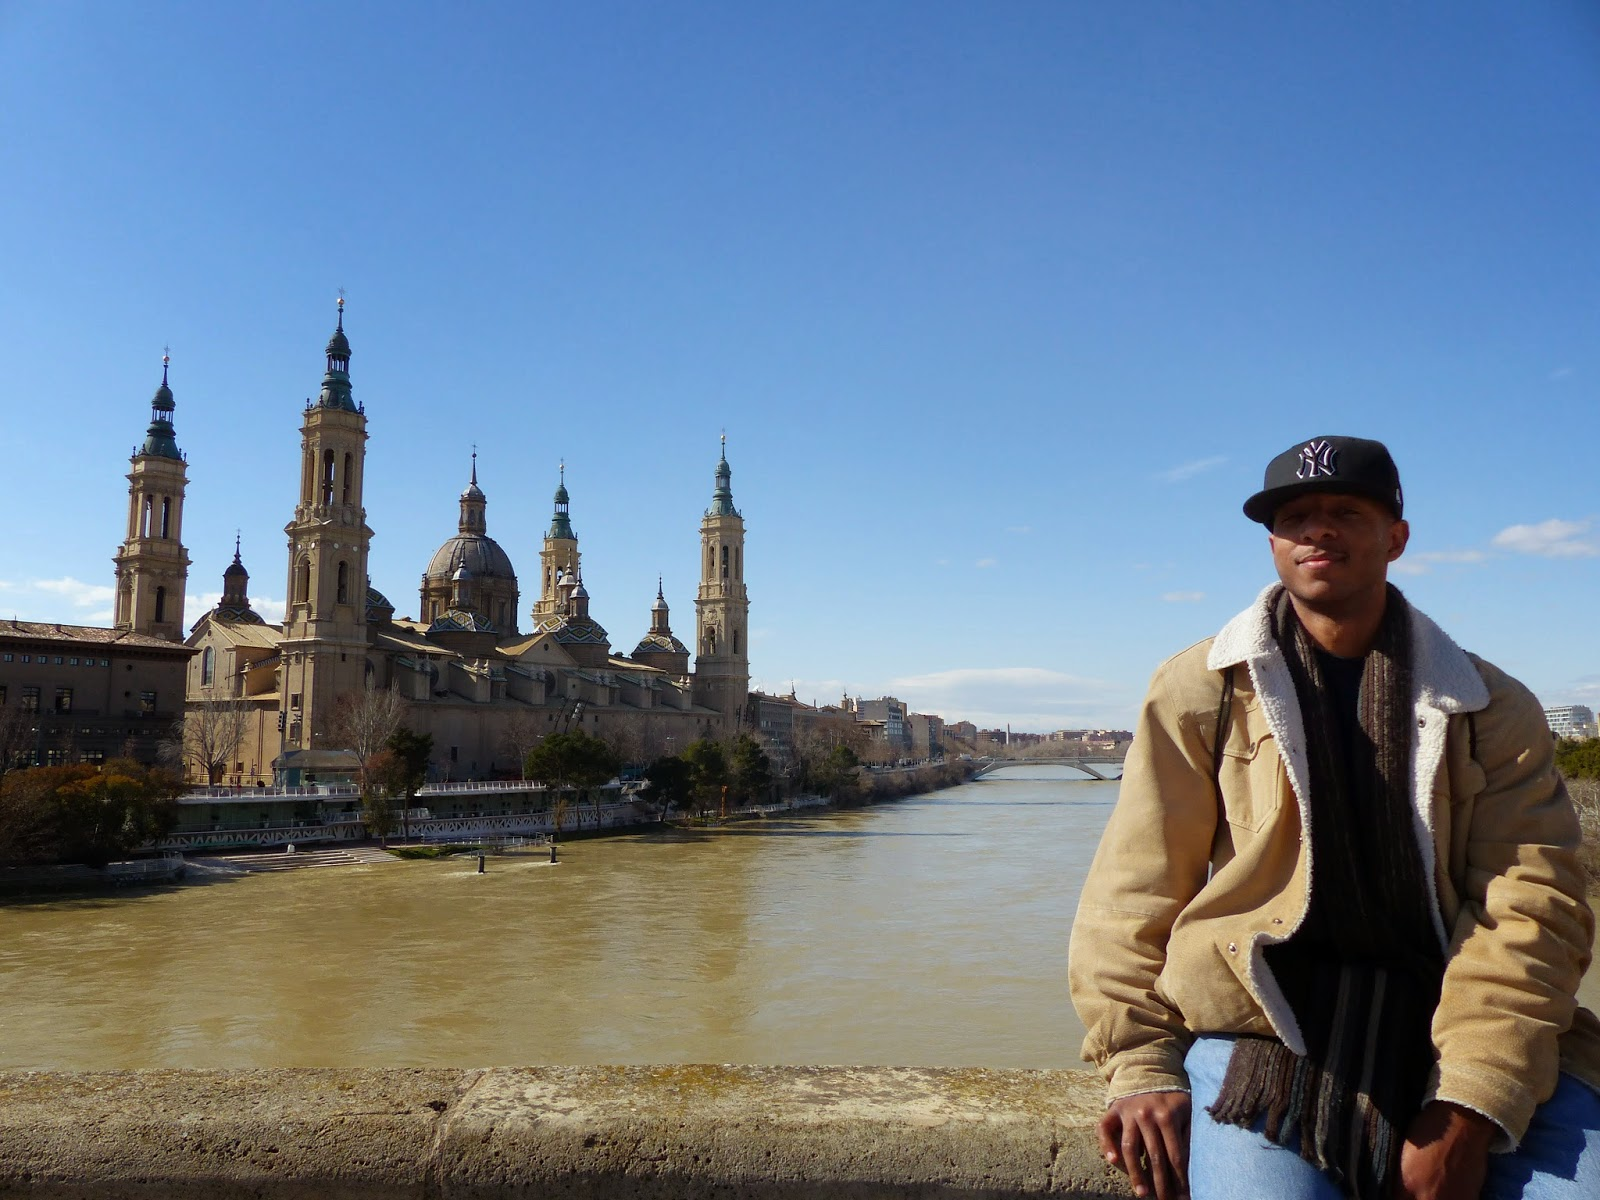 The basilica and I, overlooking a flooded El Ebro